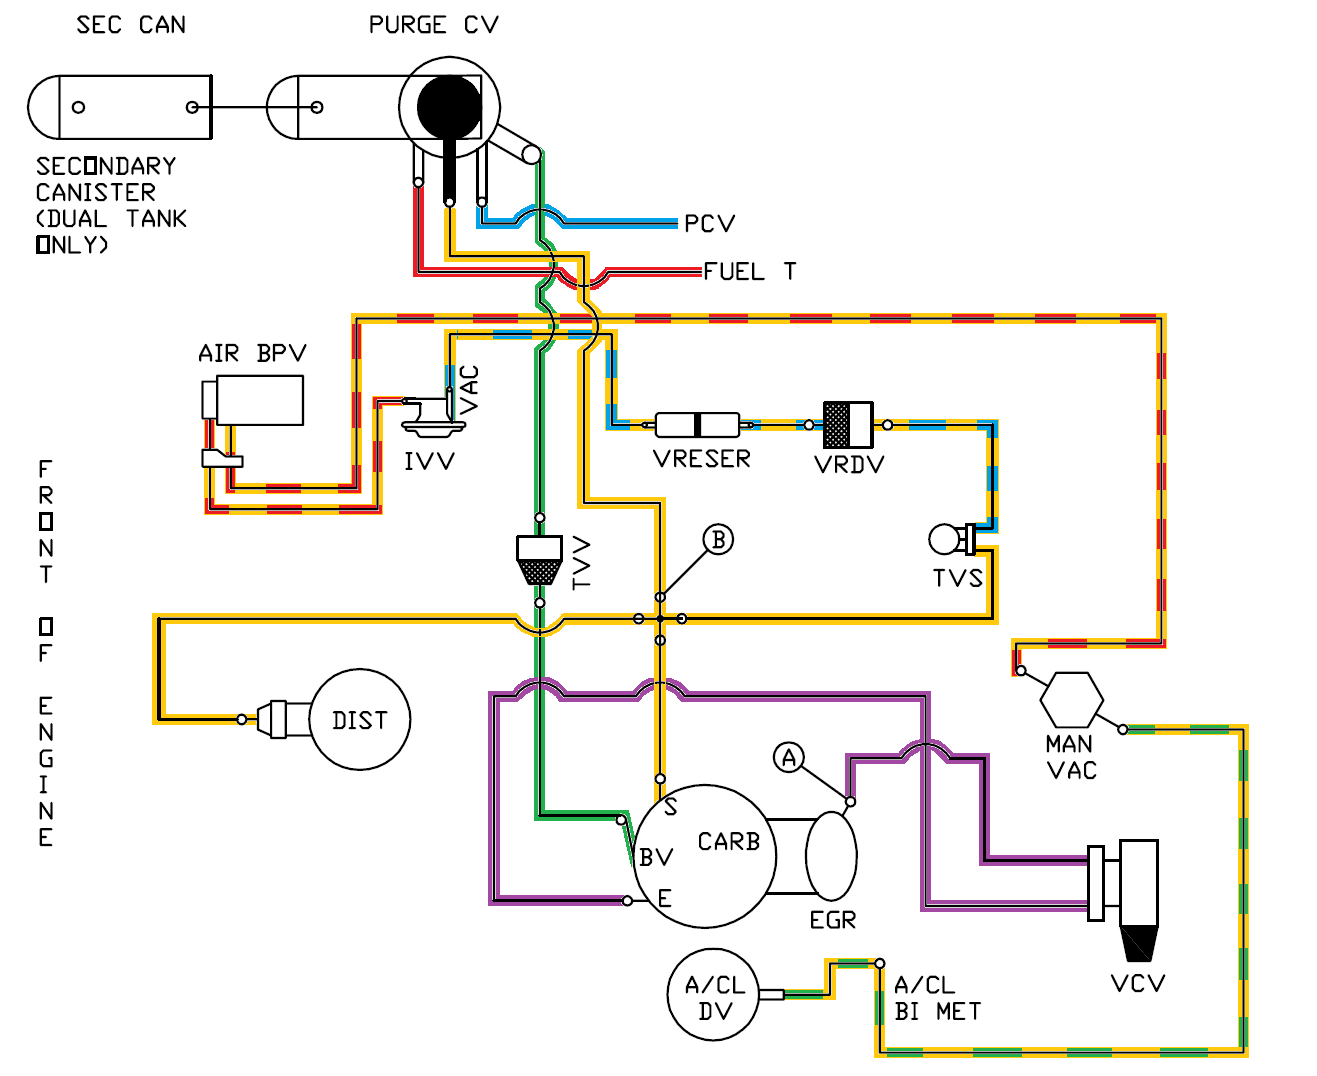 Where To Connect Vacuum Advance - Page 2